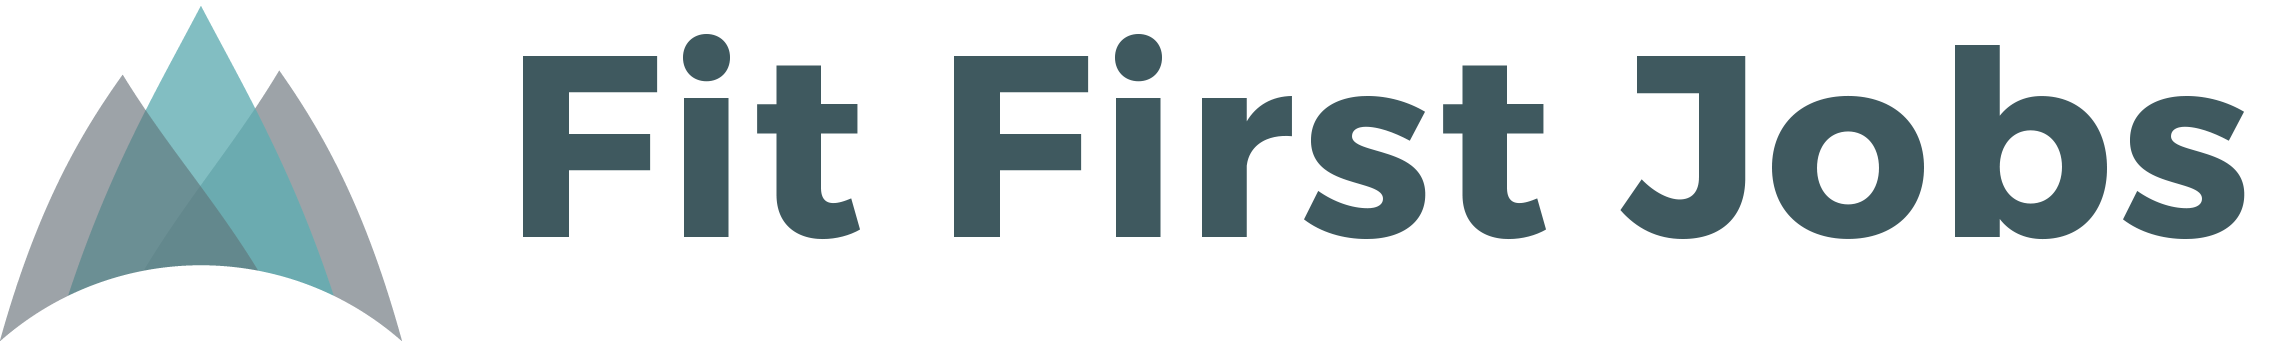 FitFirst Jobs